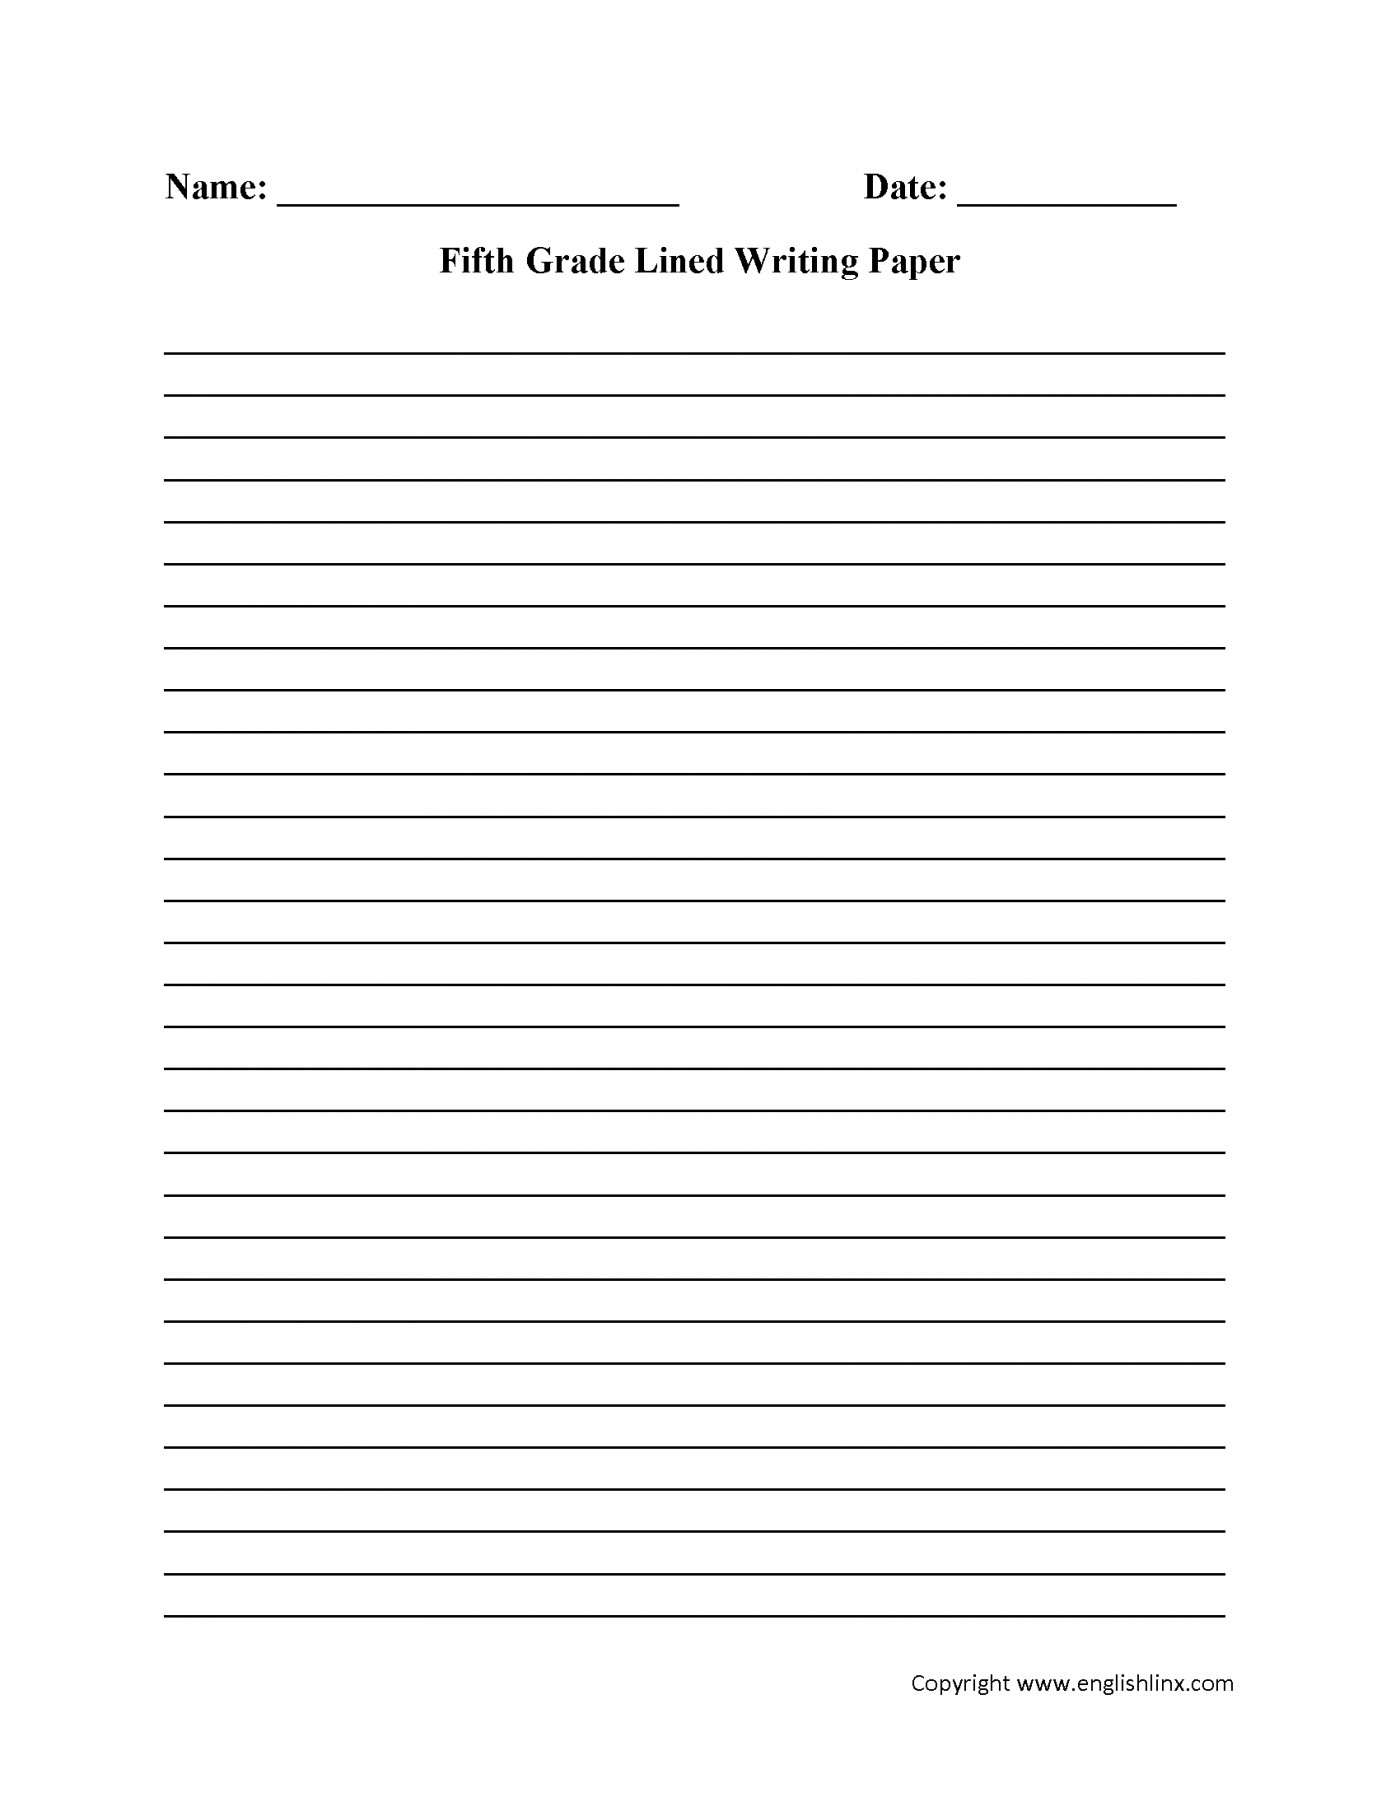 002 Essay Writing Paper Example Business Fifth Amp Kite